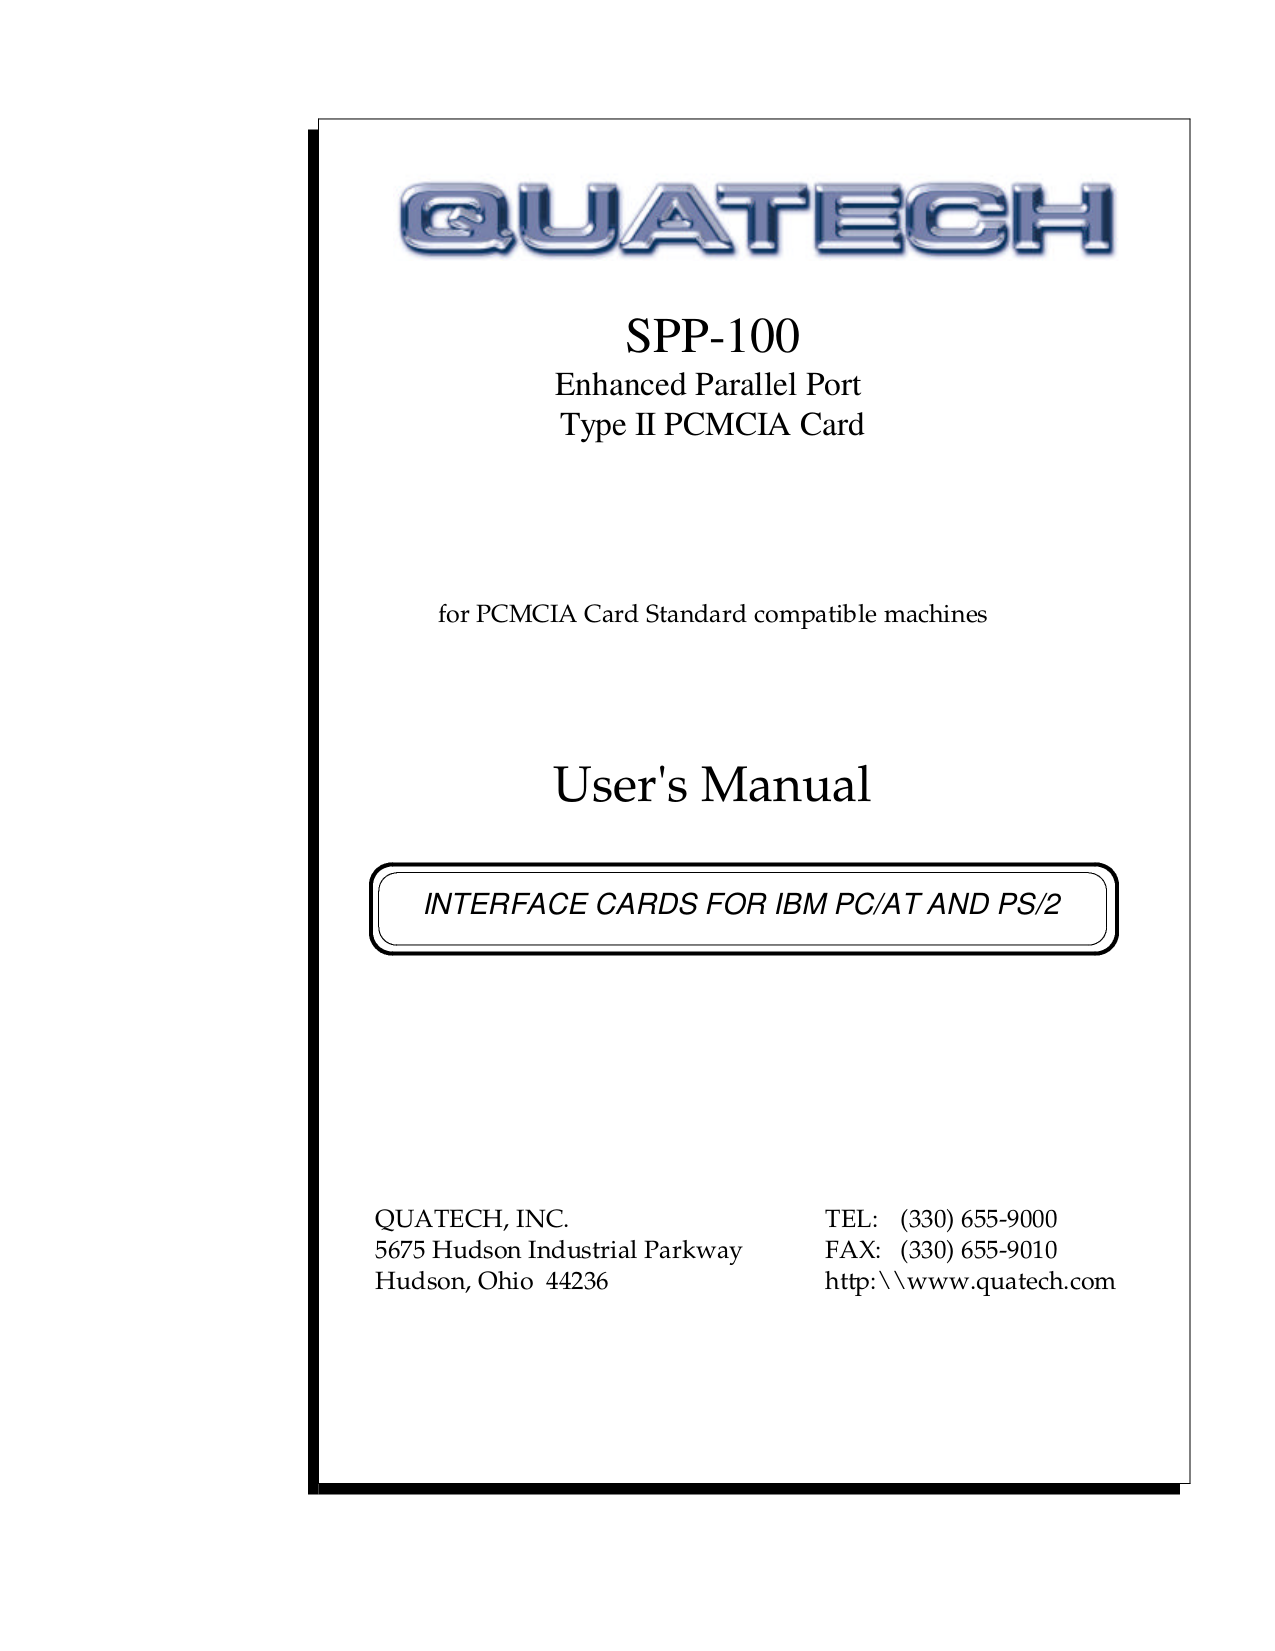 pdf for Quatech Other SPP-100 PCMCIA Cards manual